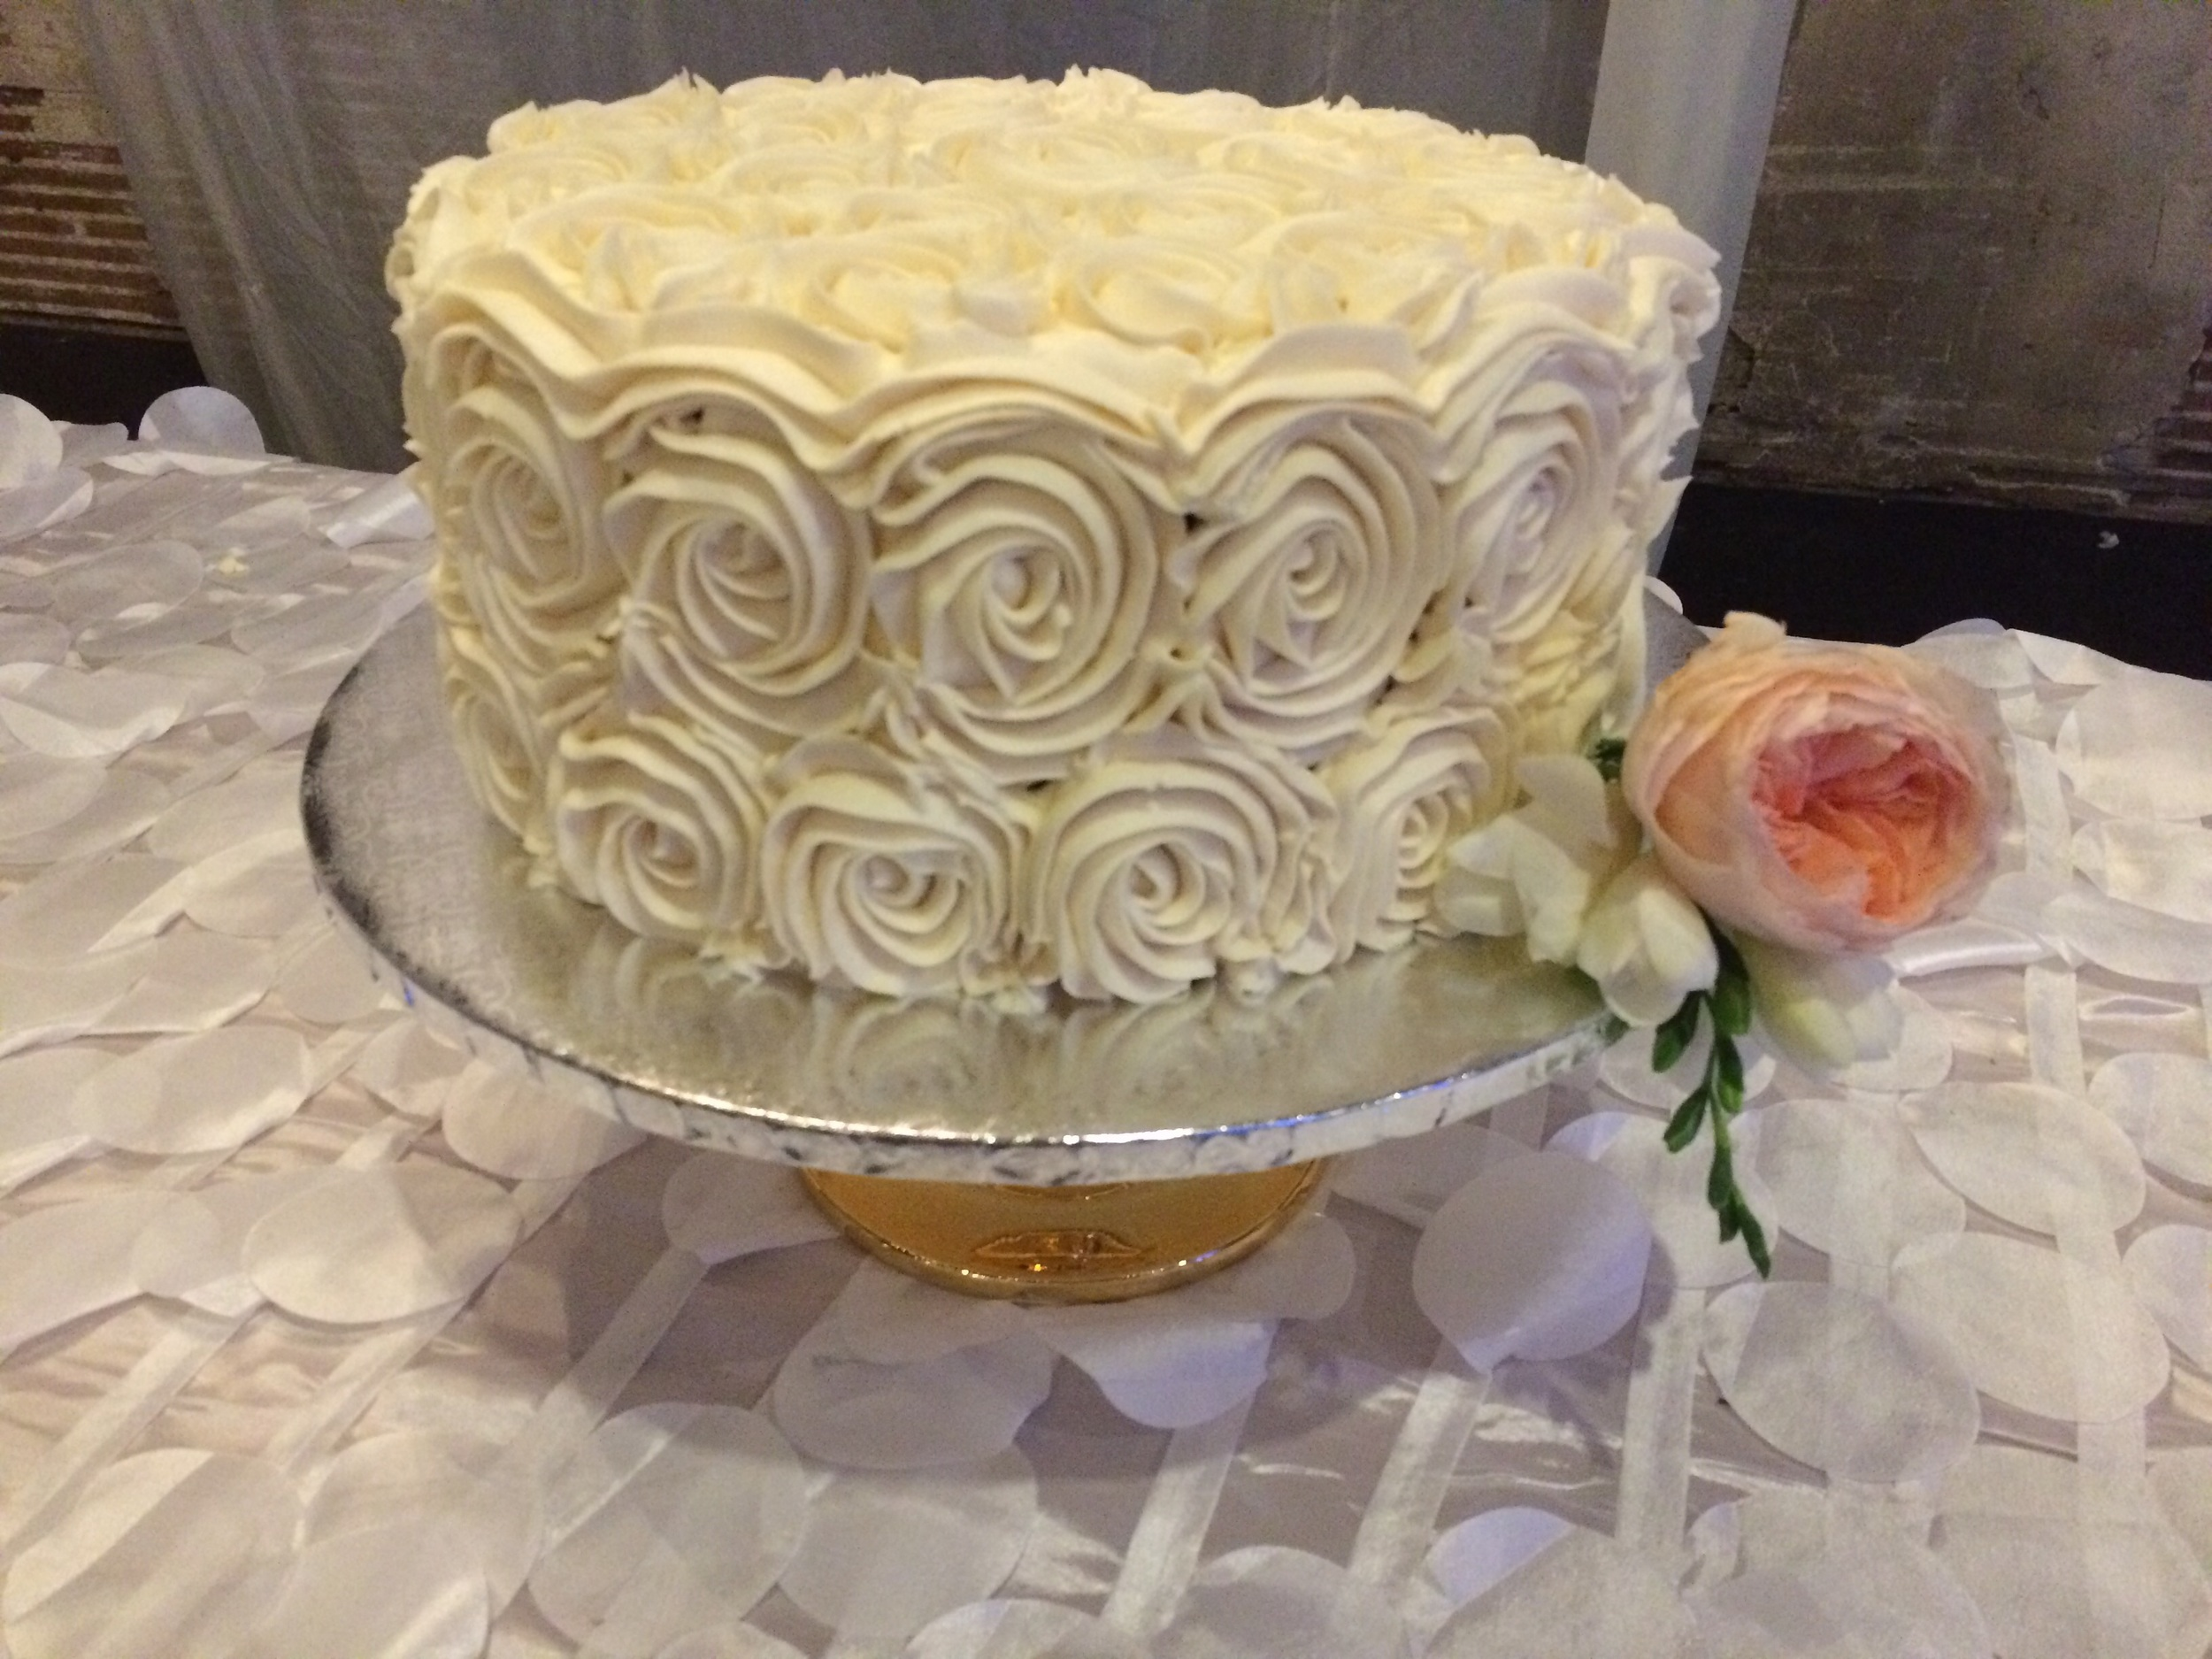 Chocolate cake filled with salted caramel and covered in buttercream roses